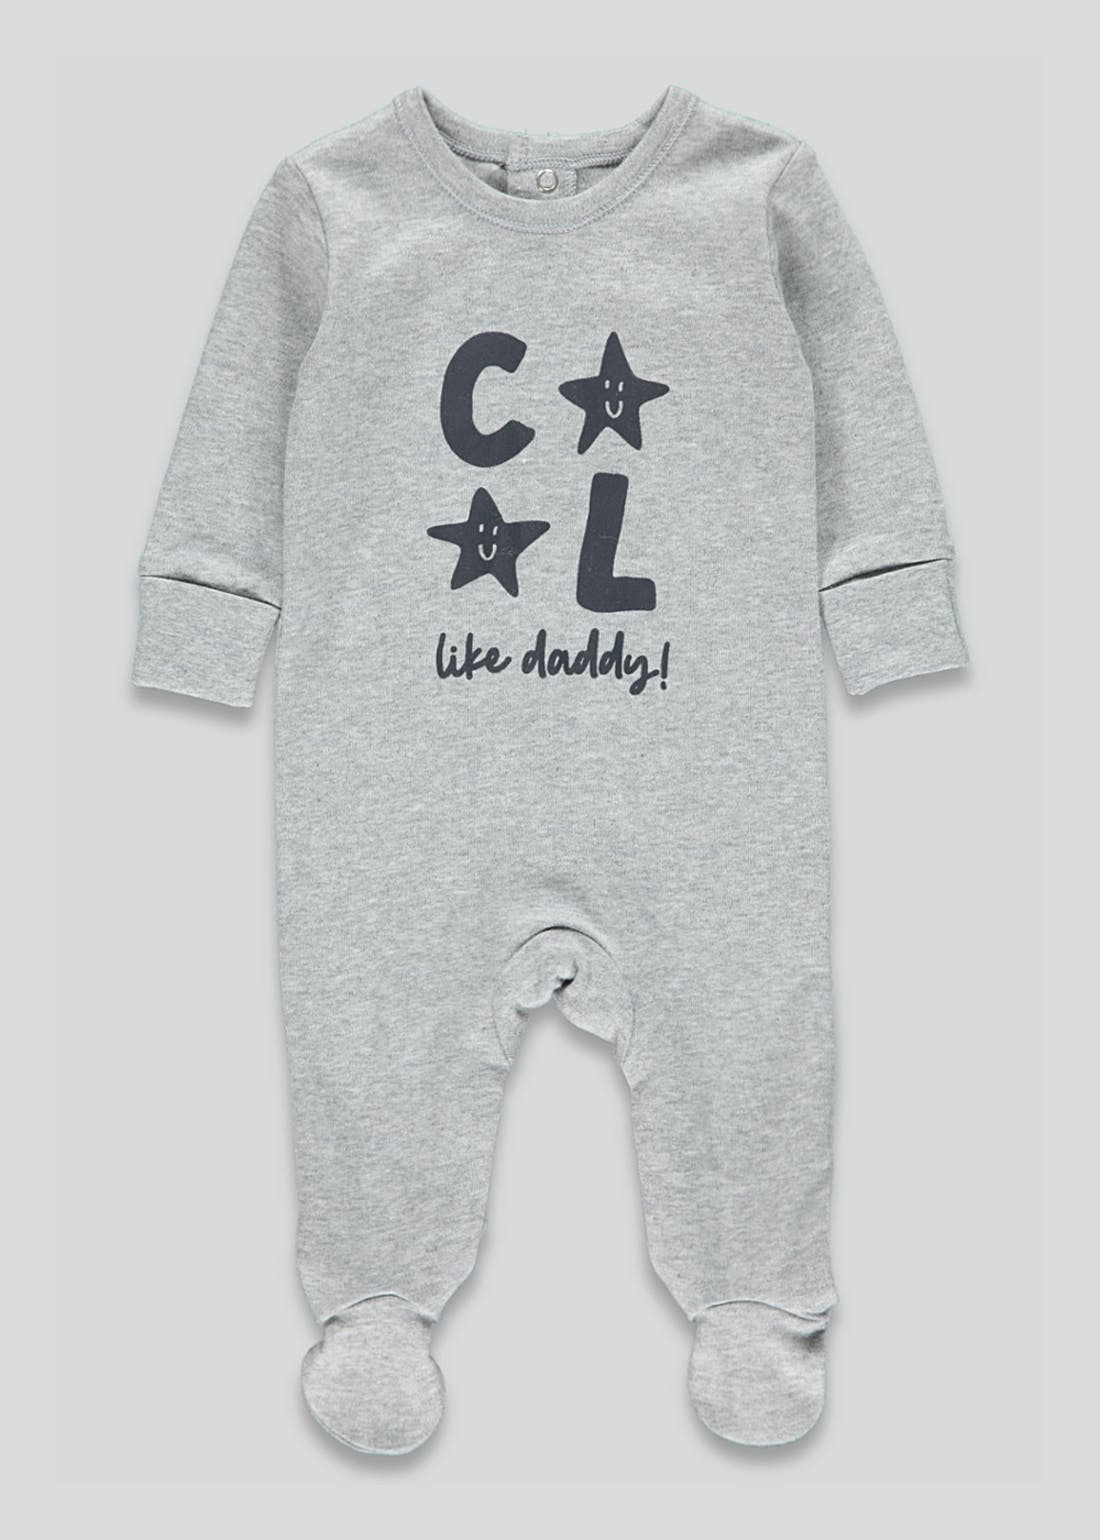 Unisex Cool Like Daddy Baby Grow (Tiny Baby-12mths)